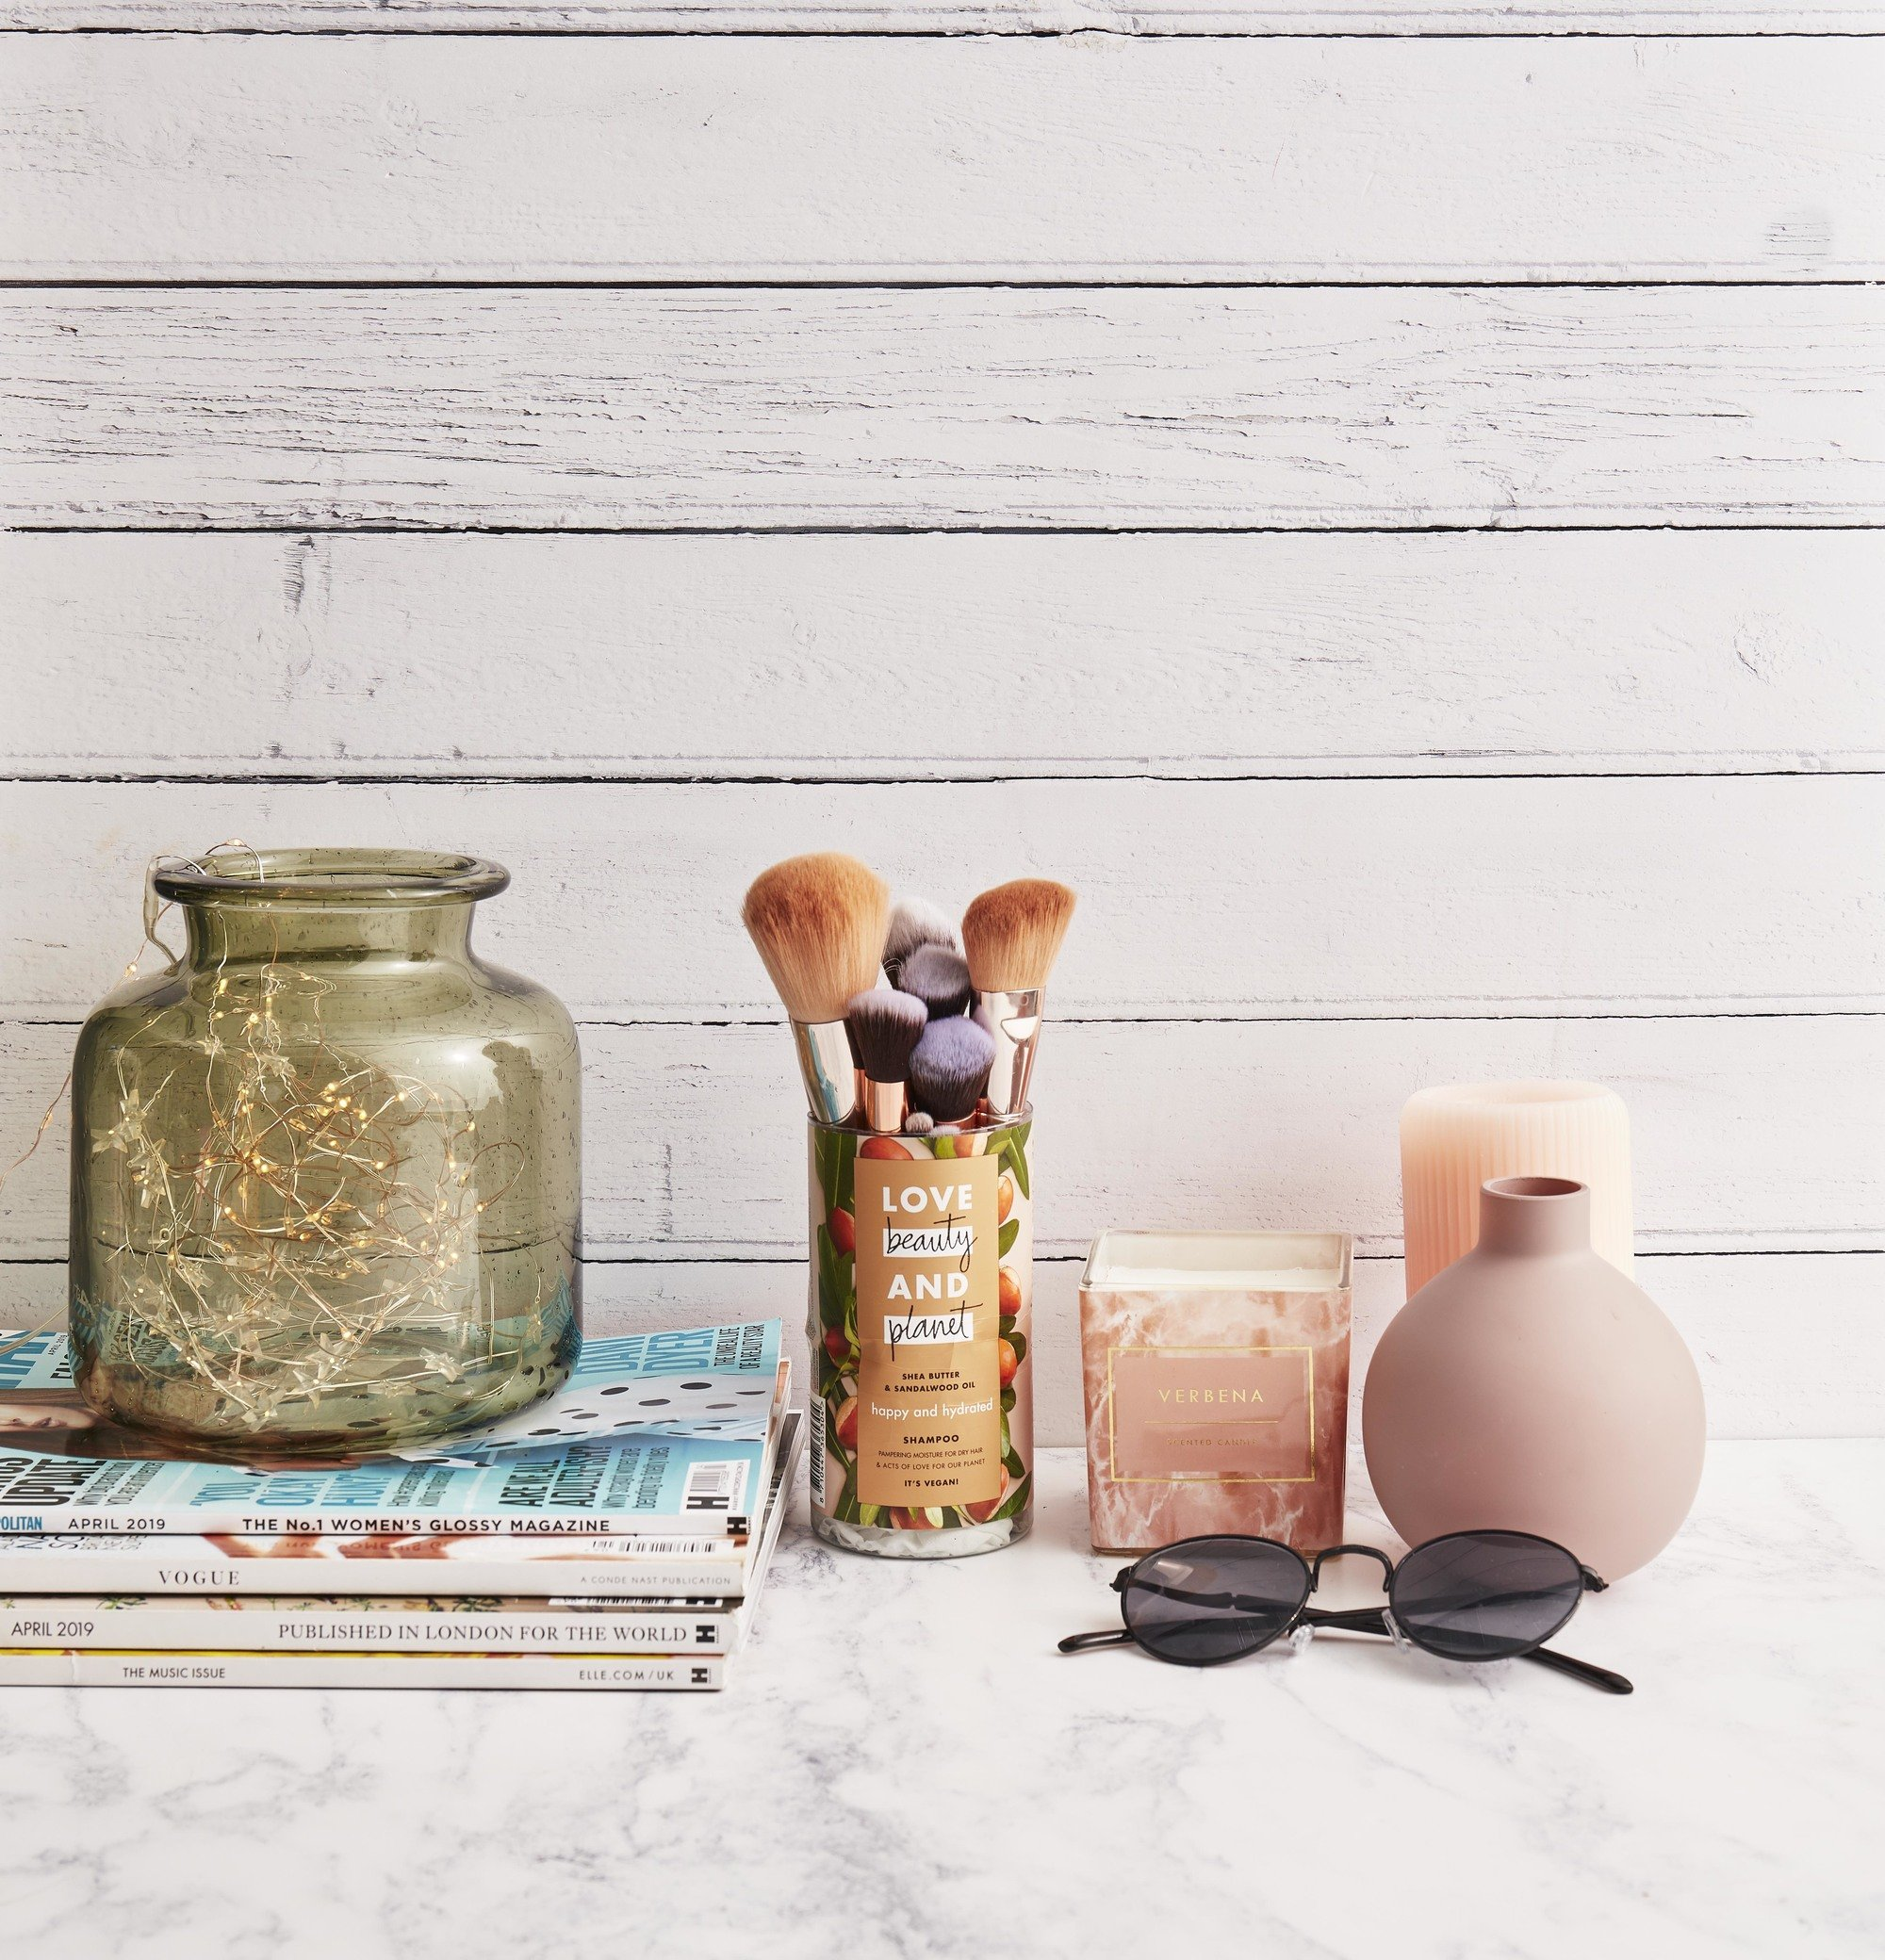 Flatlay photo of an upcycled Love Beauty And Planet shampoo bottle being used as a makeup brush holder, with vases, candles, magazines and sunglasses